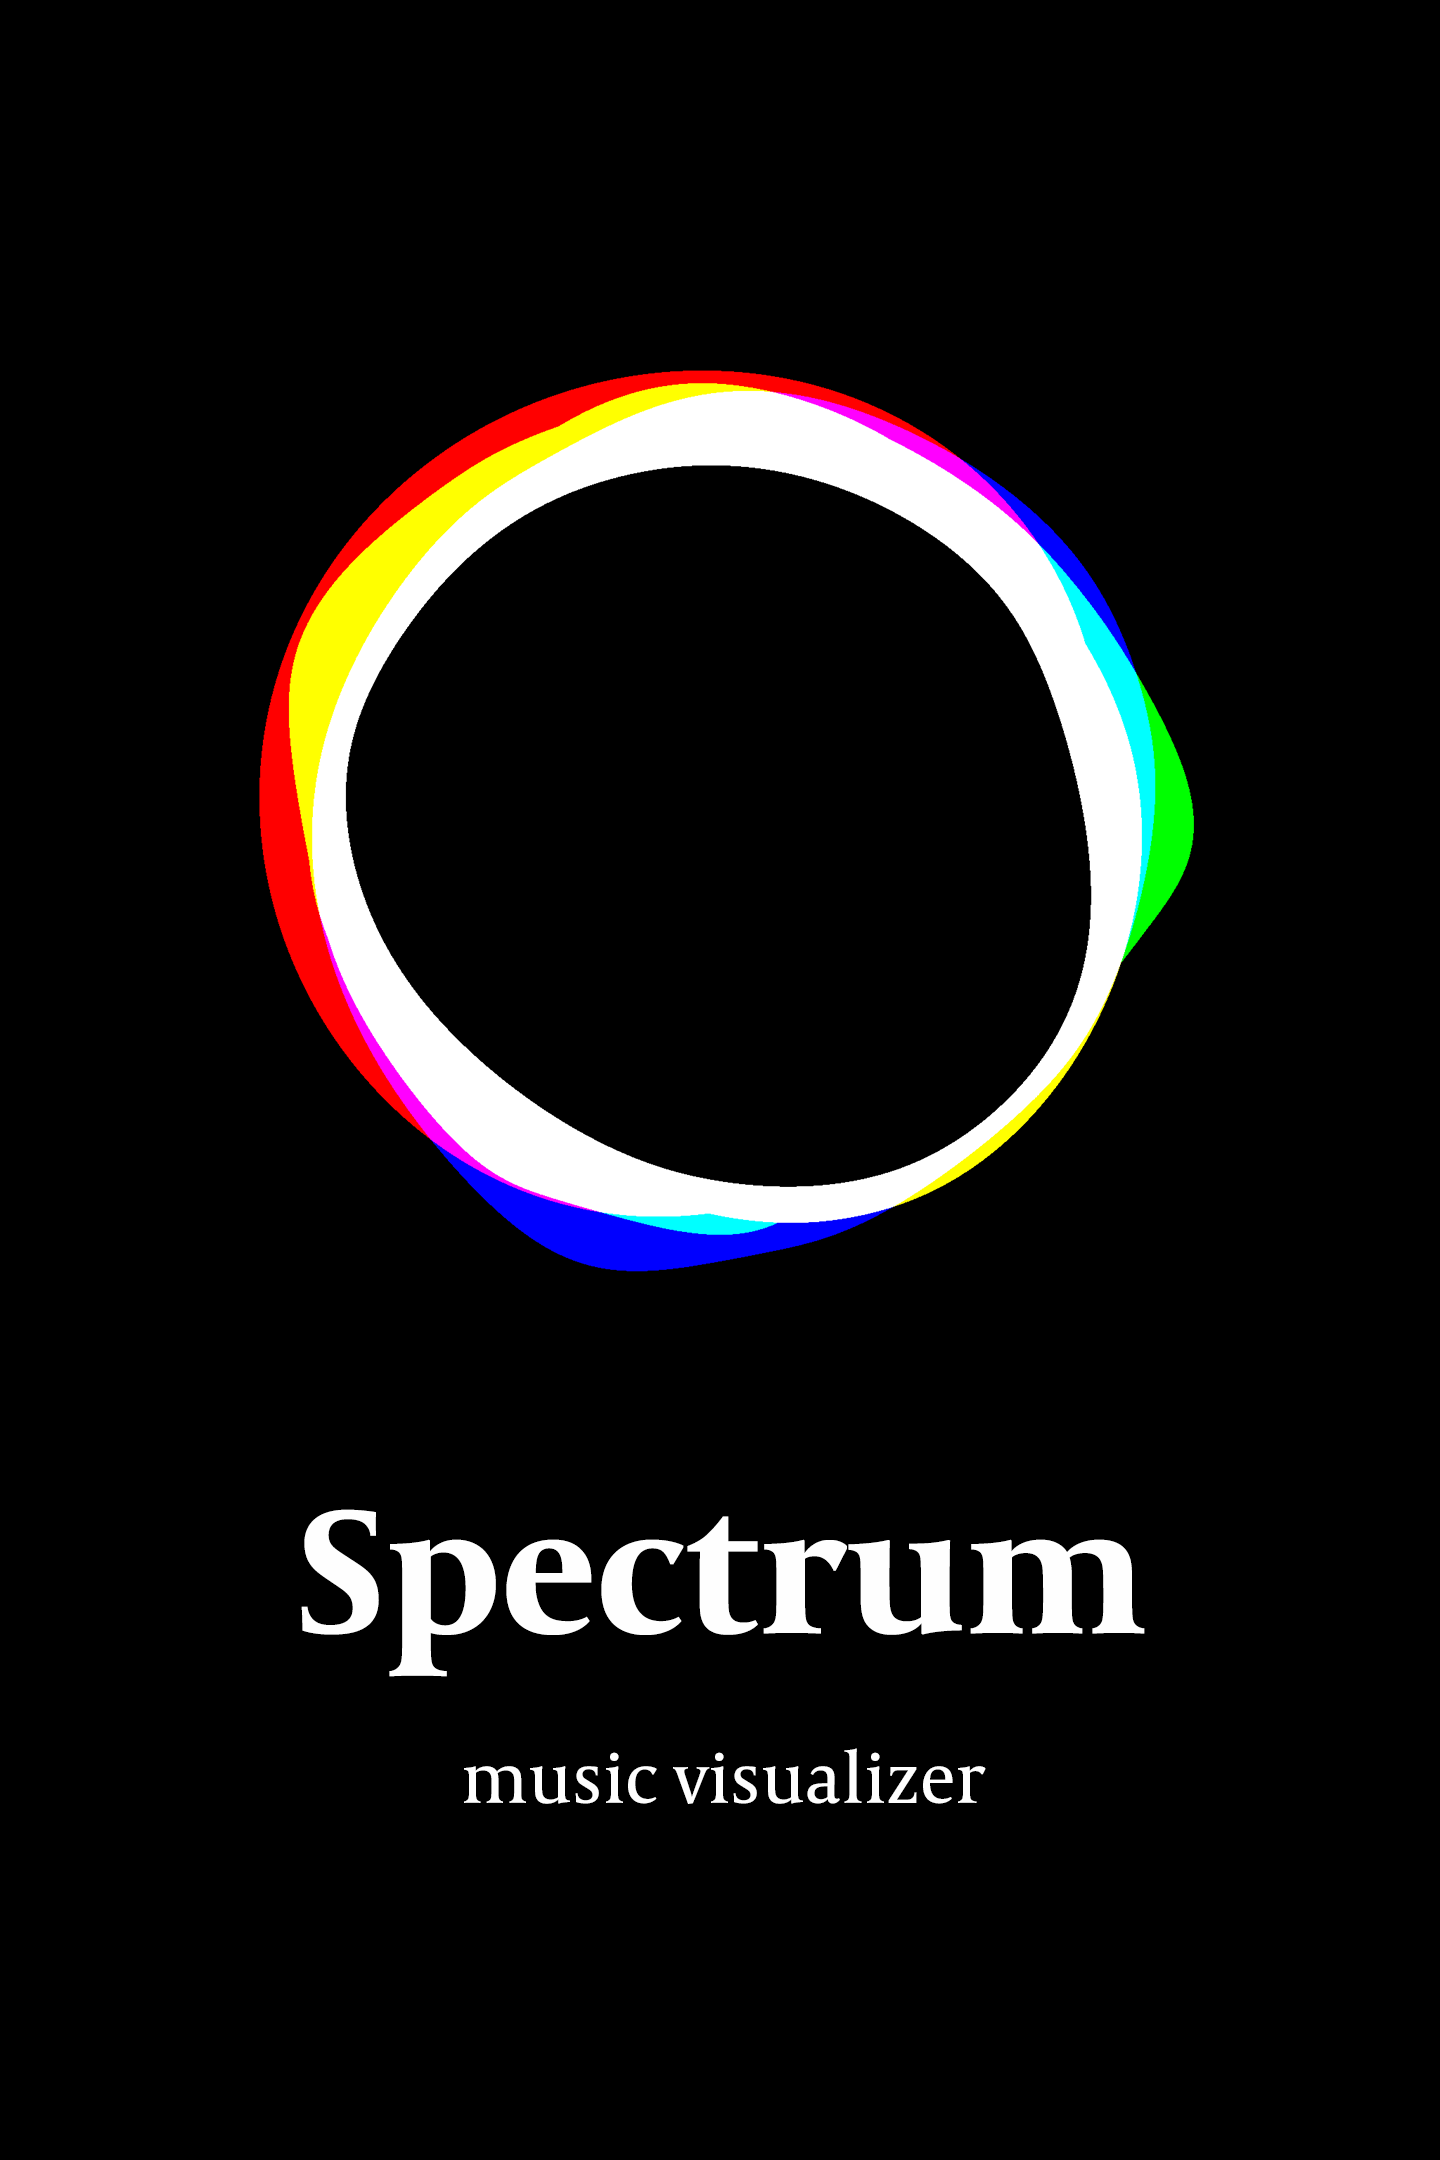 Get Spectrum - Music Visualizer - Microsoft Store